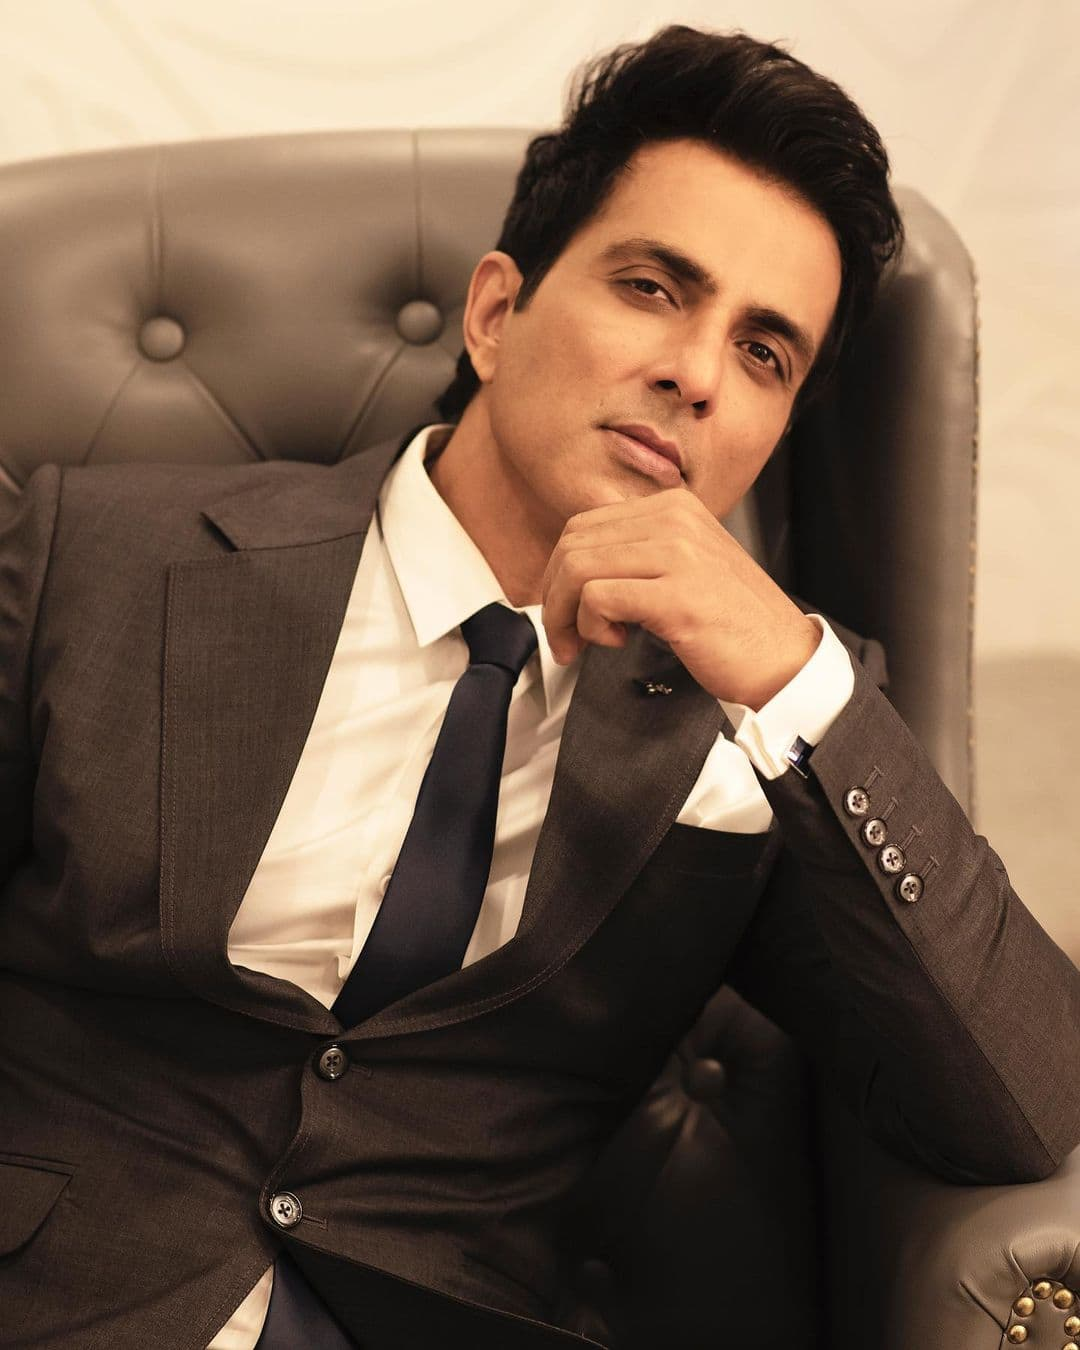 Sonu Sood Approaches Bombay High Court To Quash BMC's Notice Of Illegal Construction Sent To Him Last Year - DesiMartini